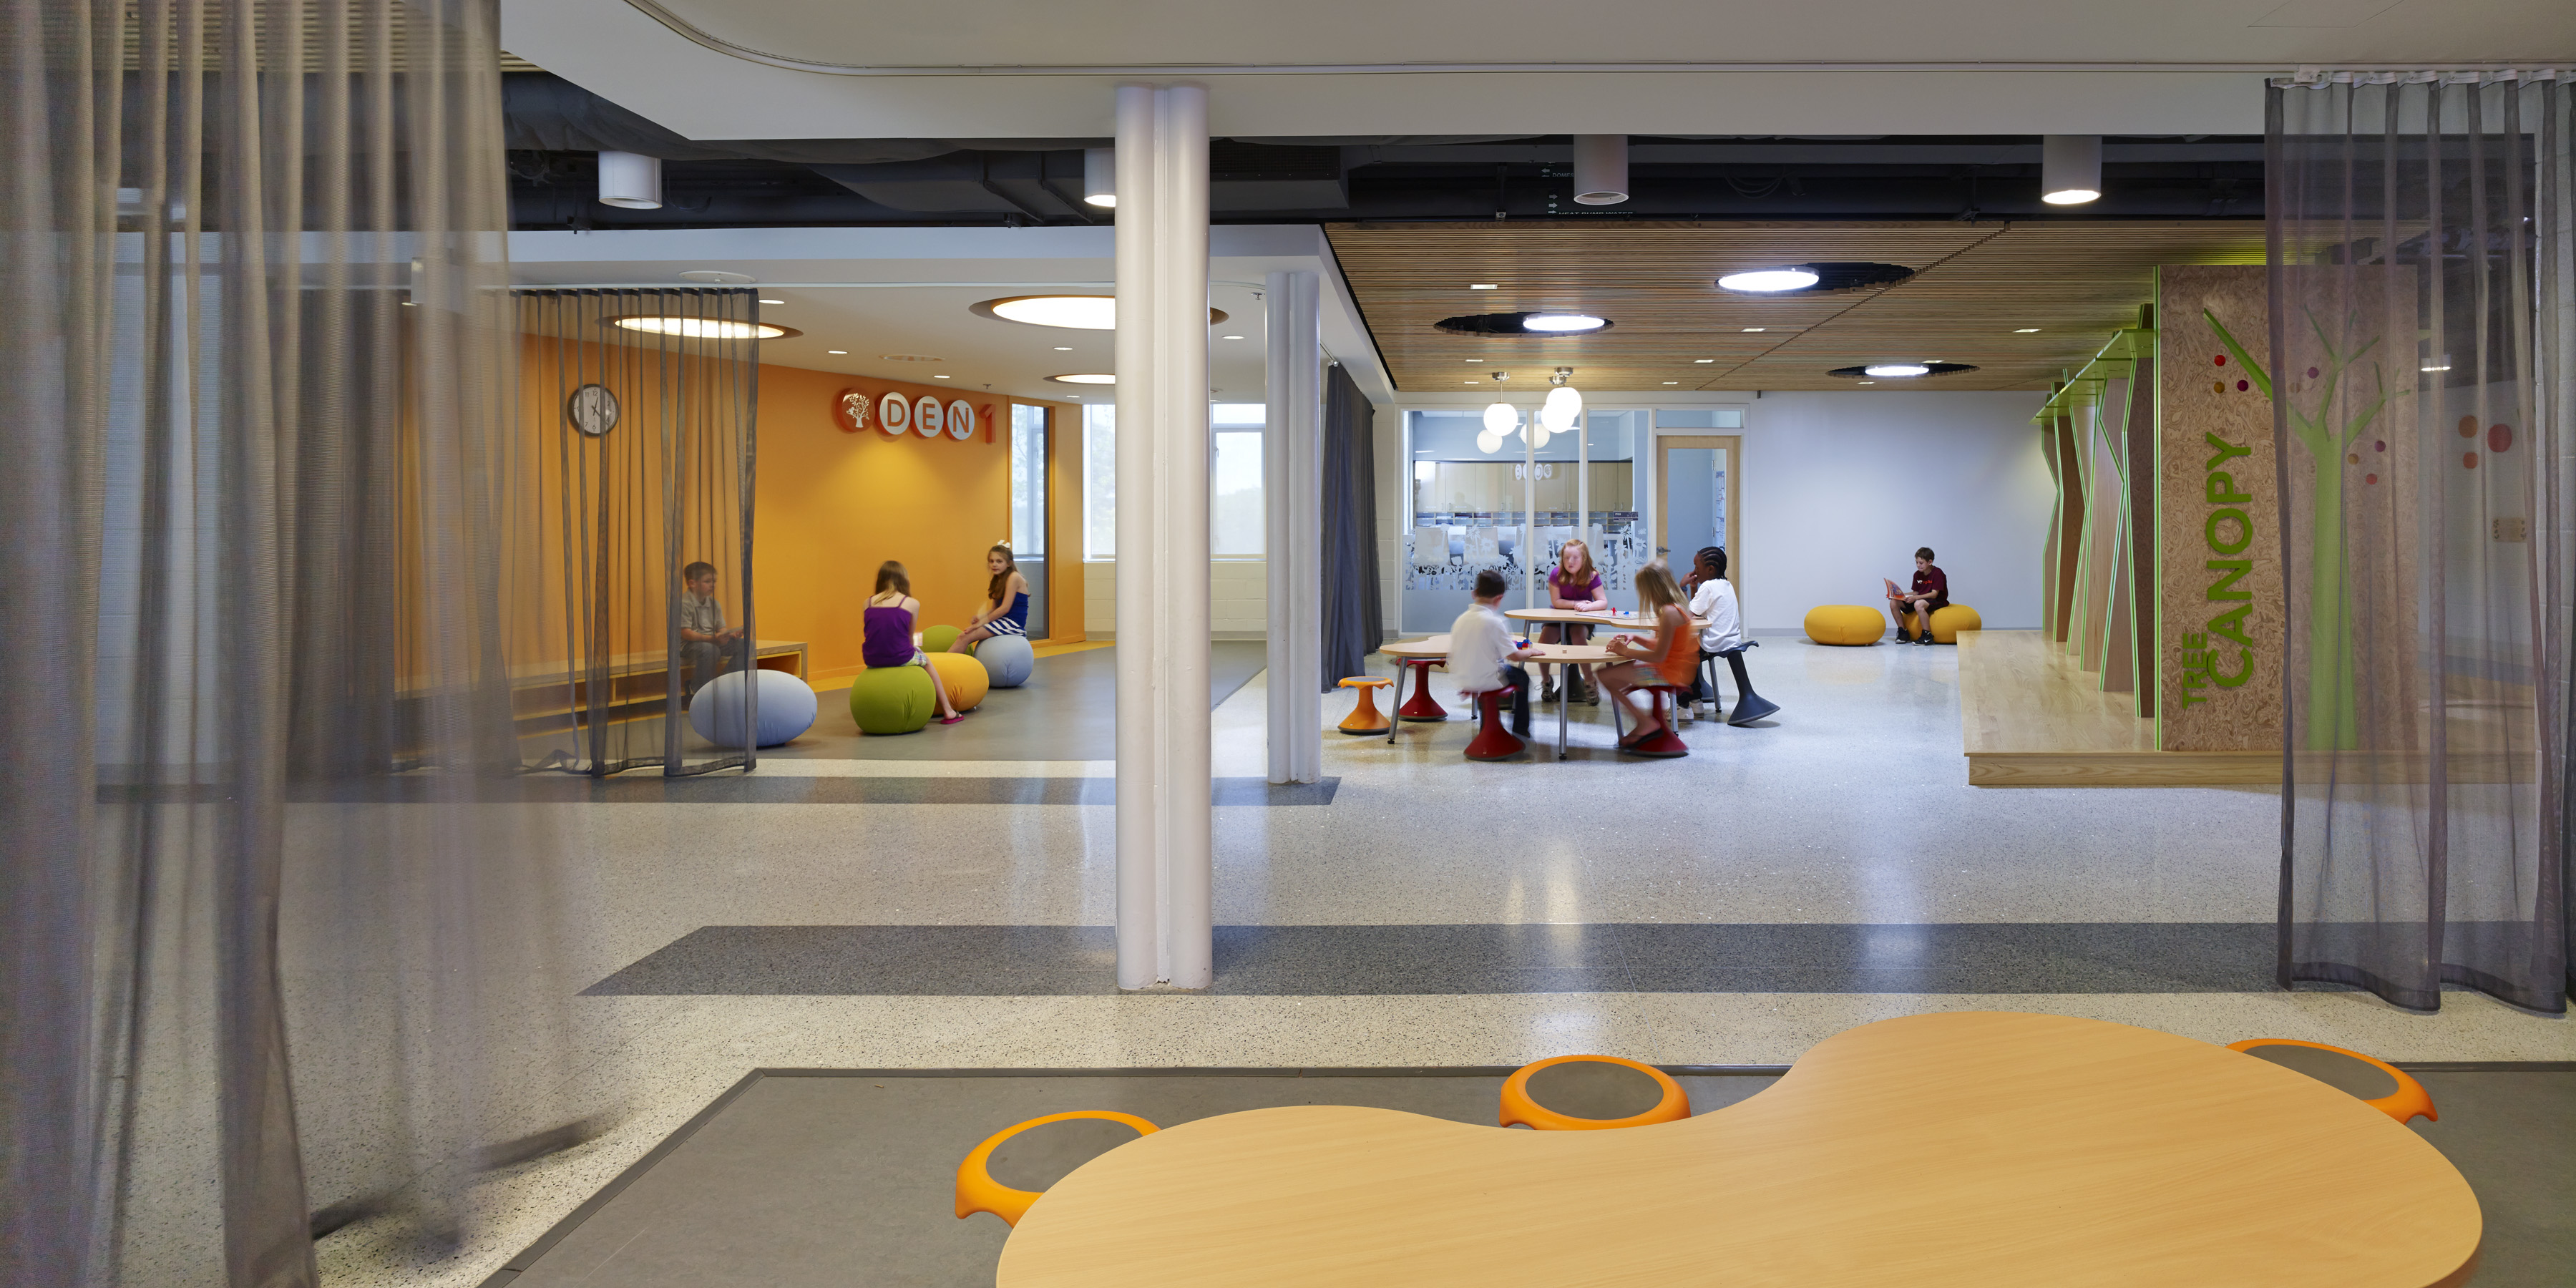 Vmdo projects receive top honors at vefp conference vmdo for School kitchen designs